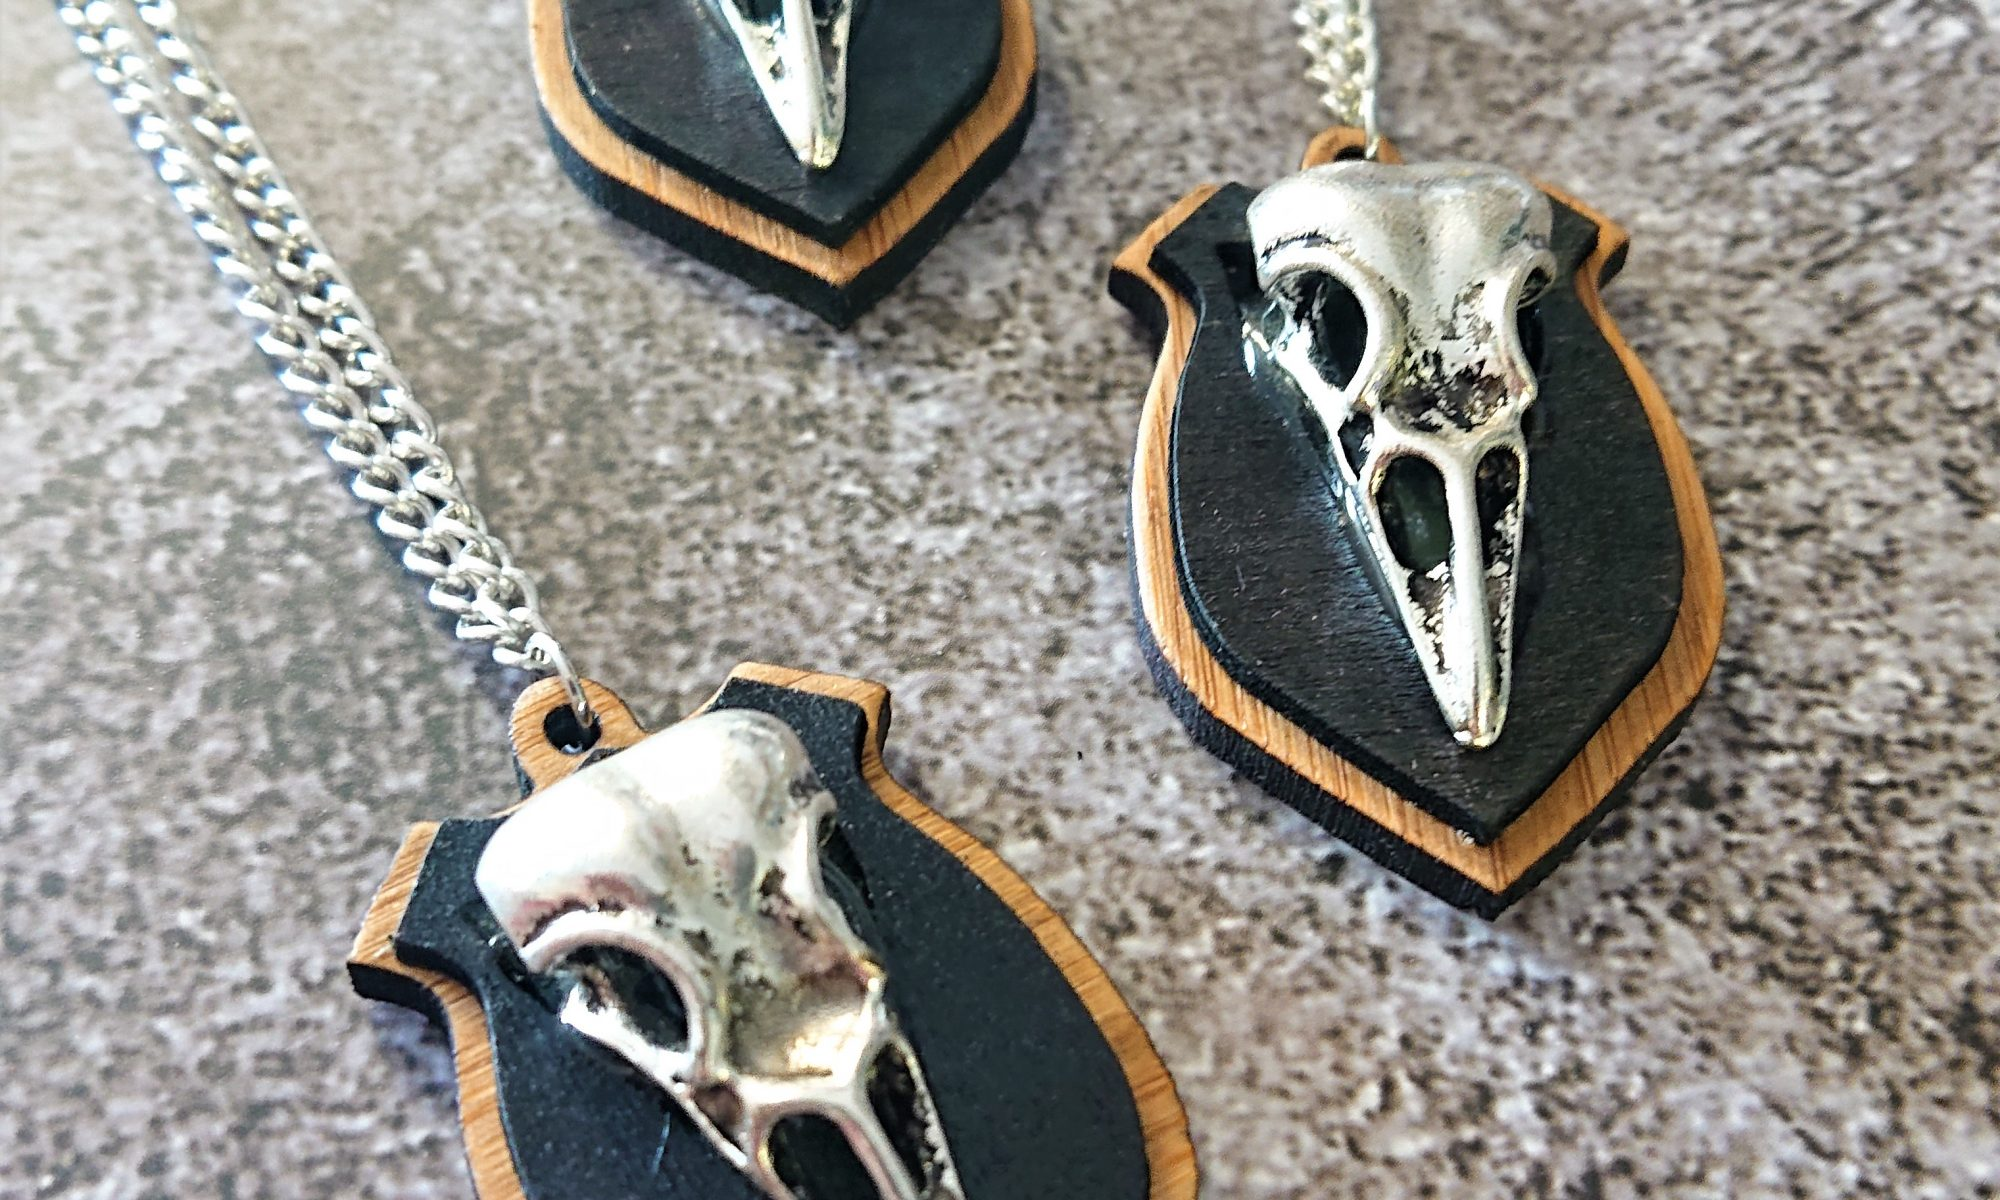 Mounted Covid Bird Skull Necklace by Beams and Bobbins alternative gothic jewellery